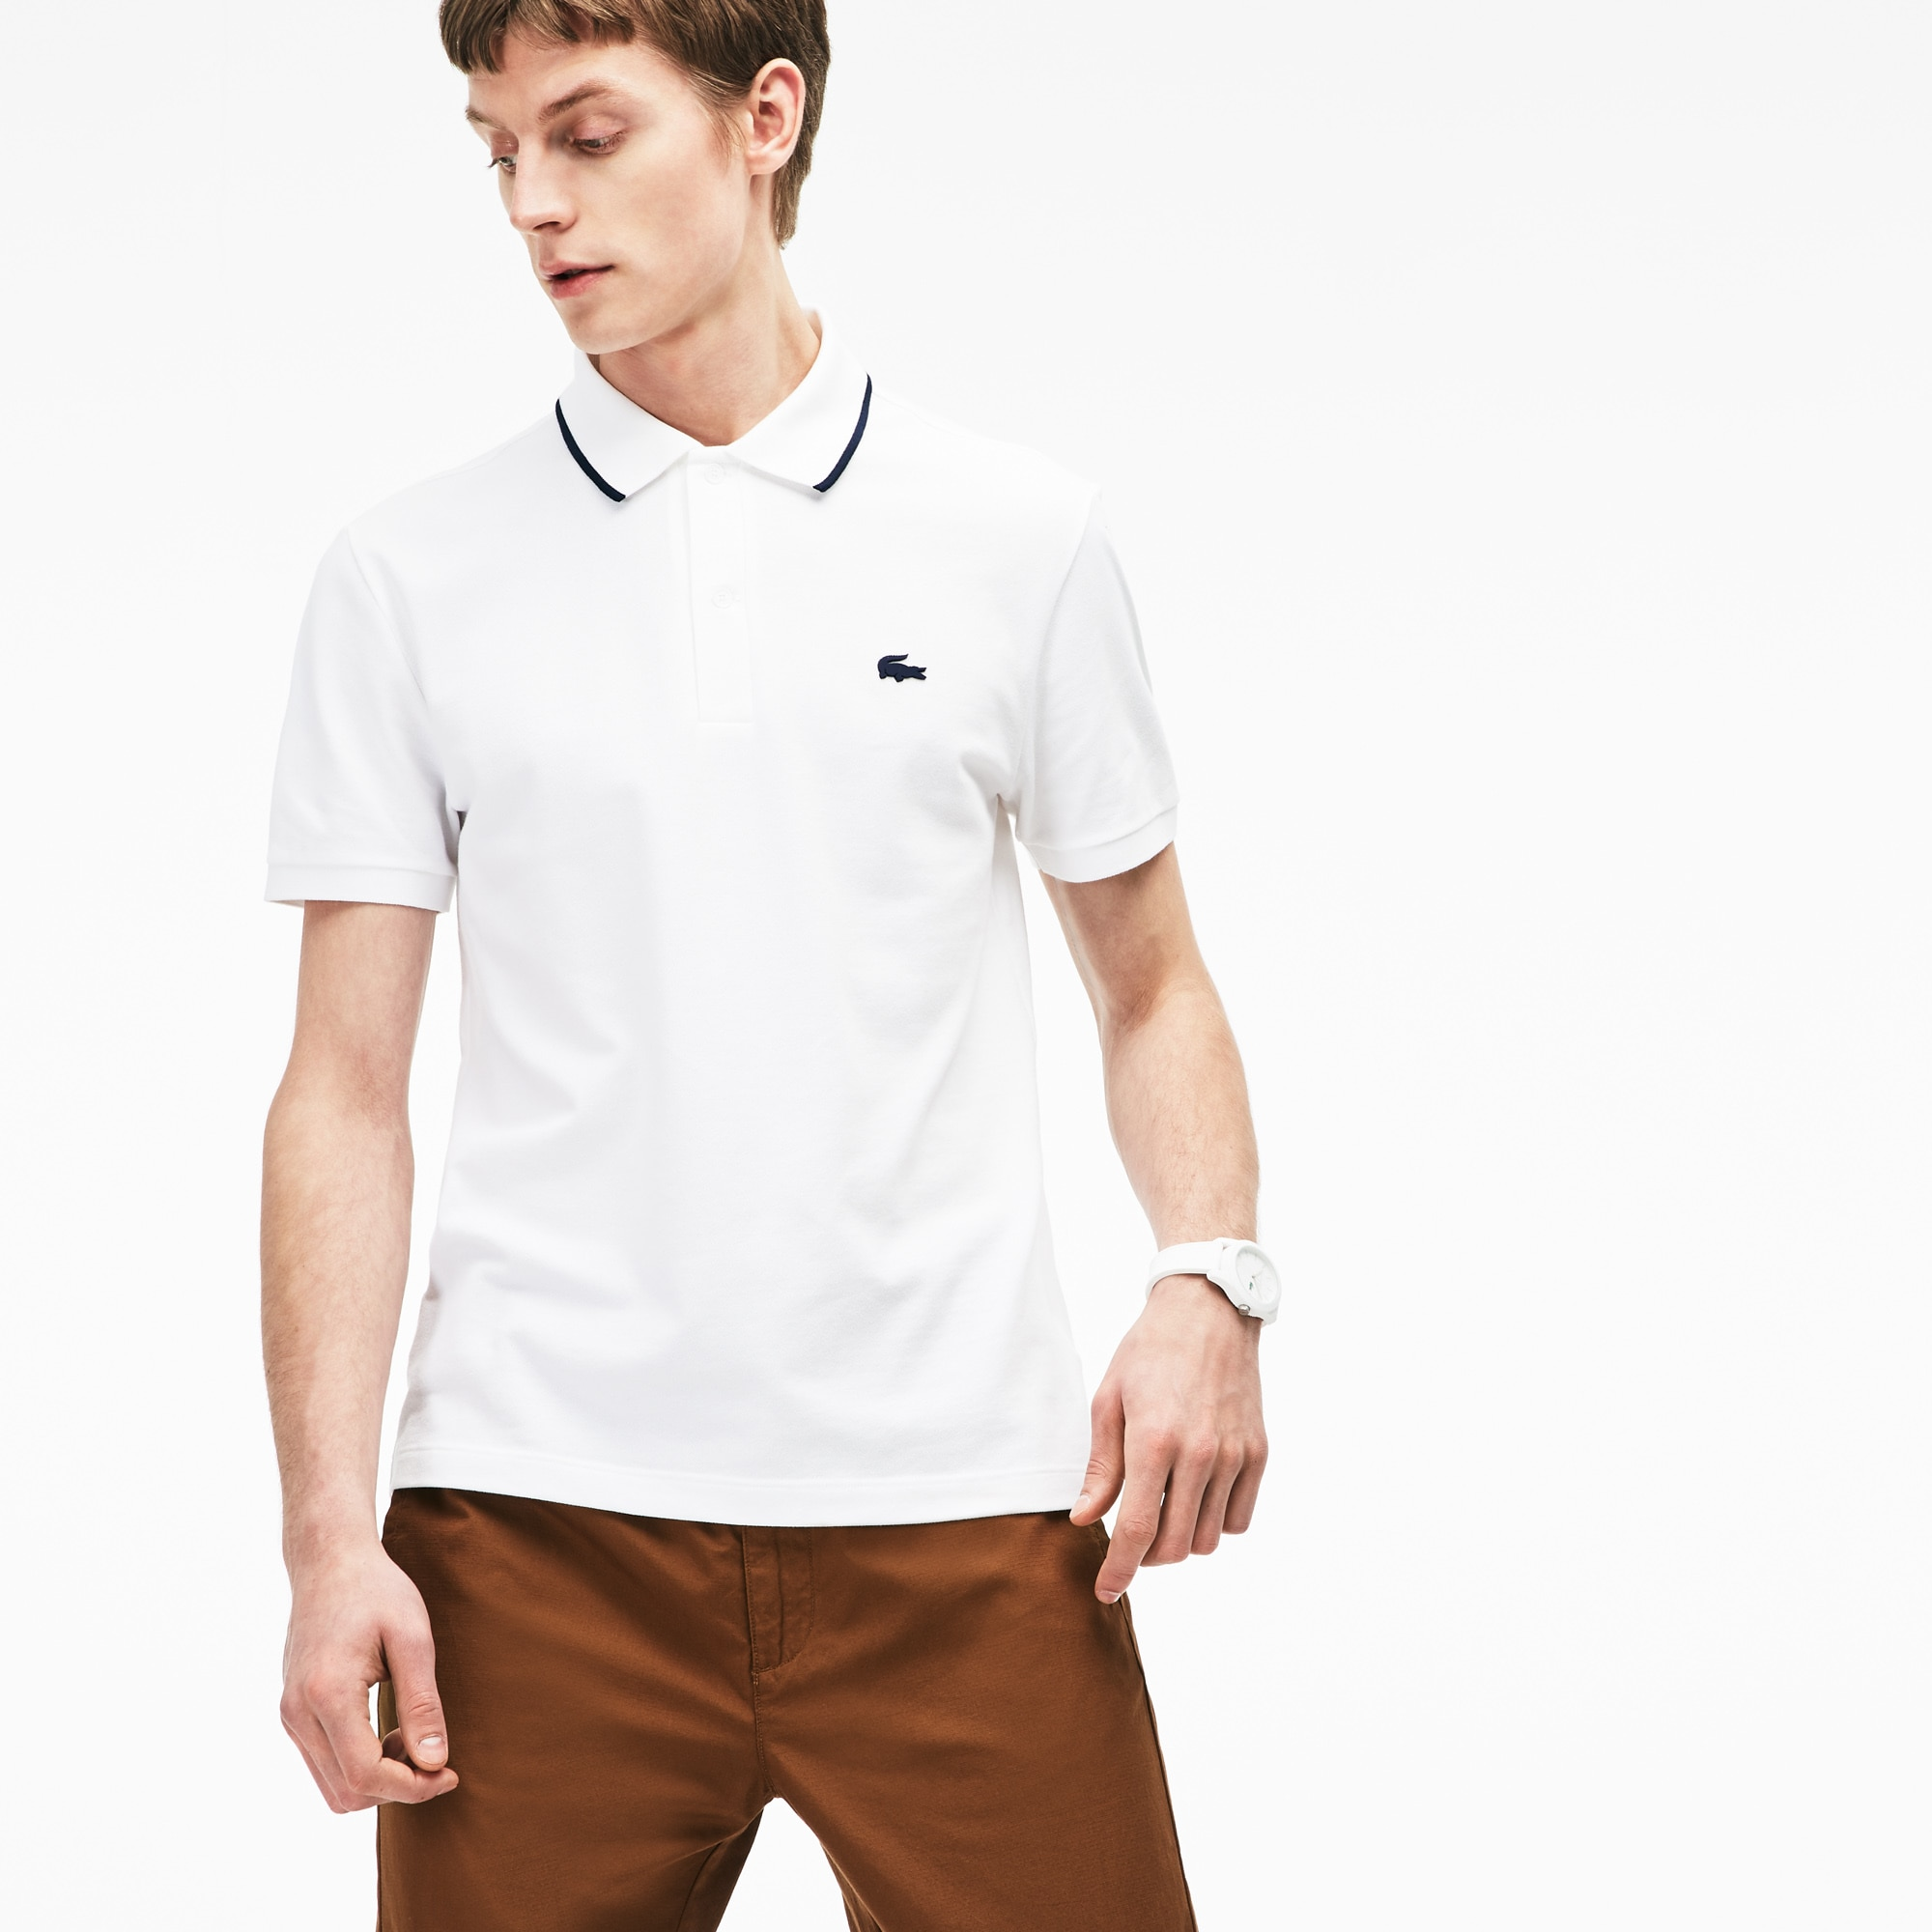 Polo slim fit Lacoste in cotone Pima stretch con bordino sul collo